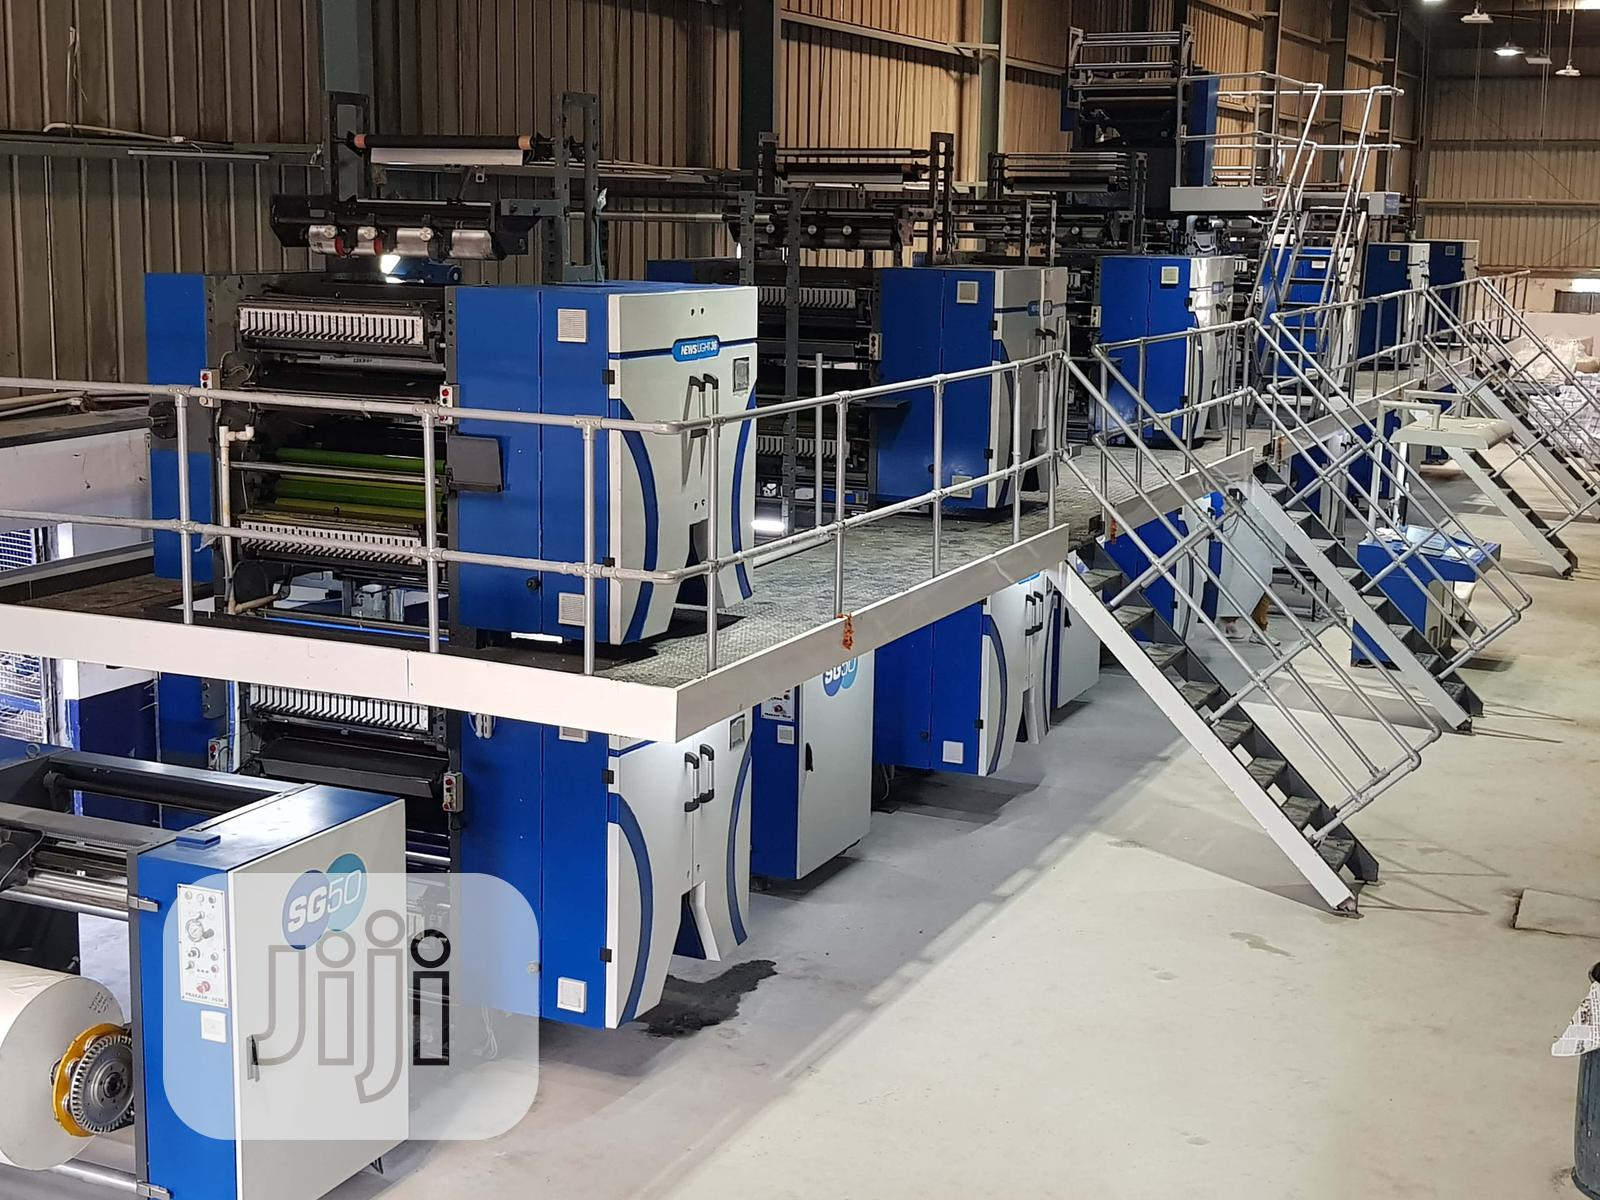 Modern Offset Printing Machines In A Large Printing Plant